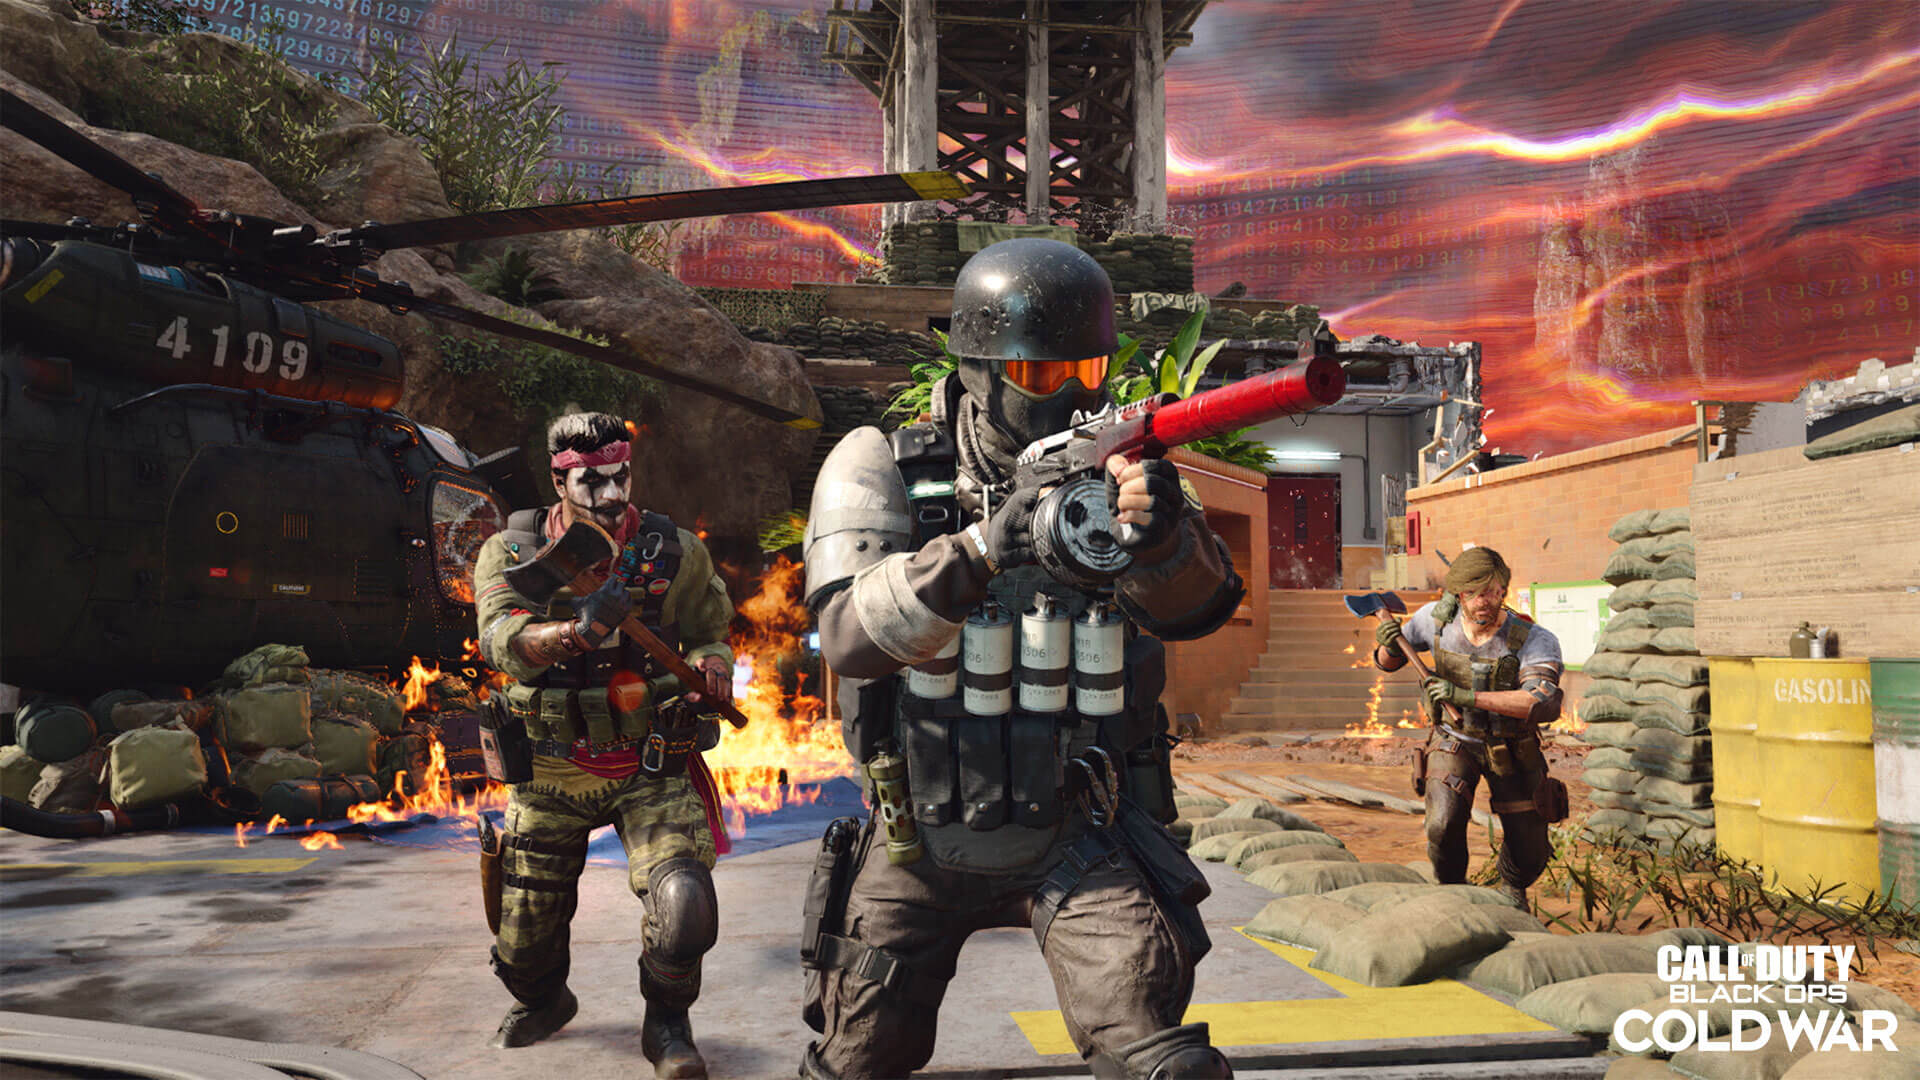 Call of Duty Black Ops Cold War & Warzone: Roadmap for Season 6 - that's in the update